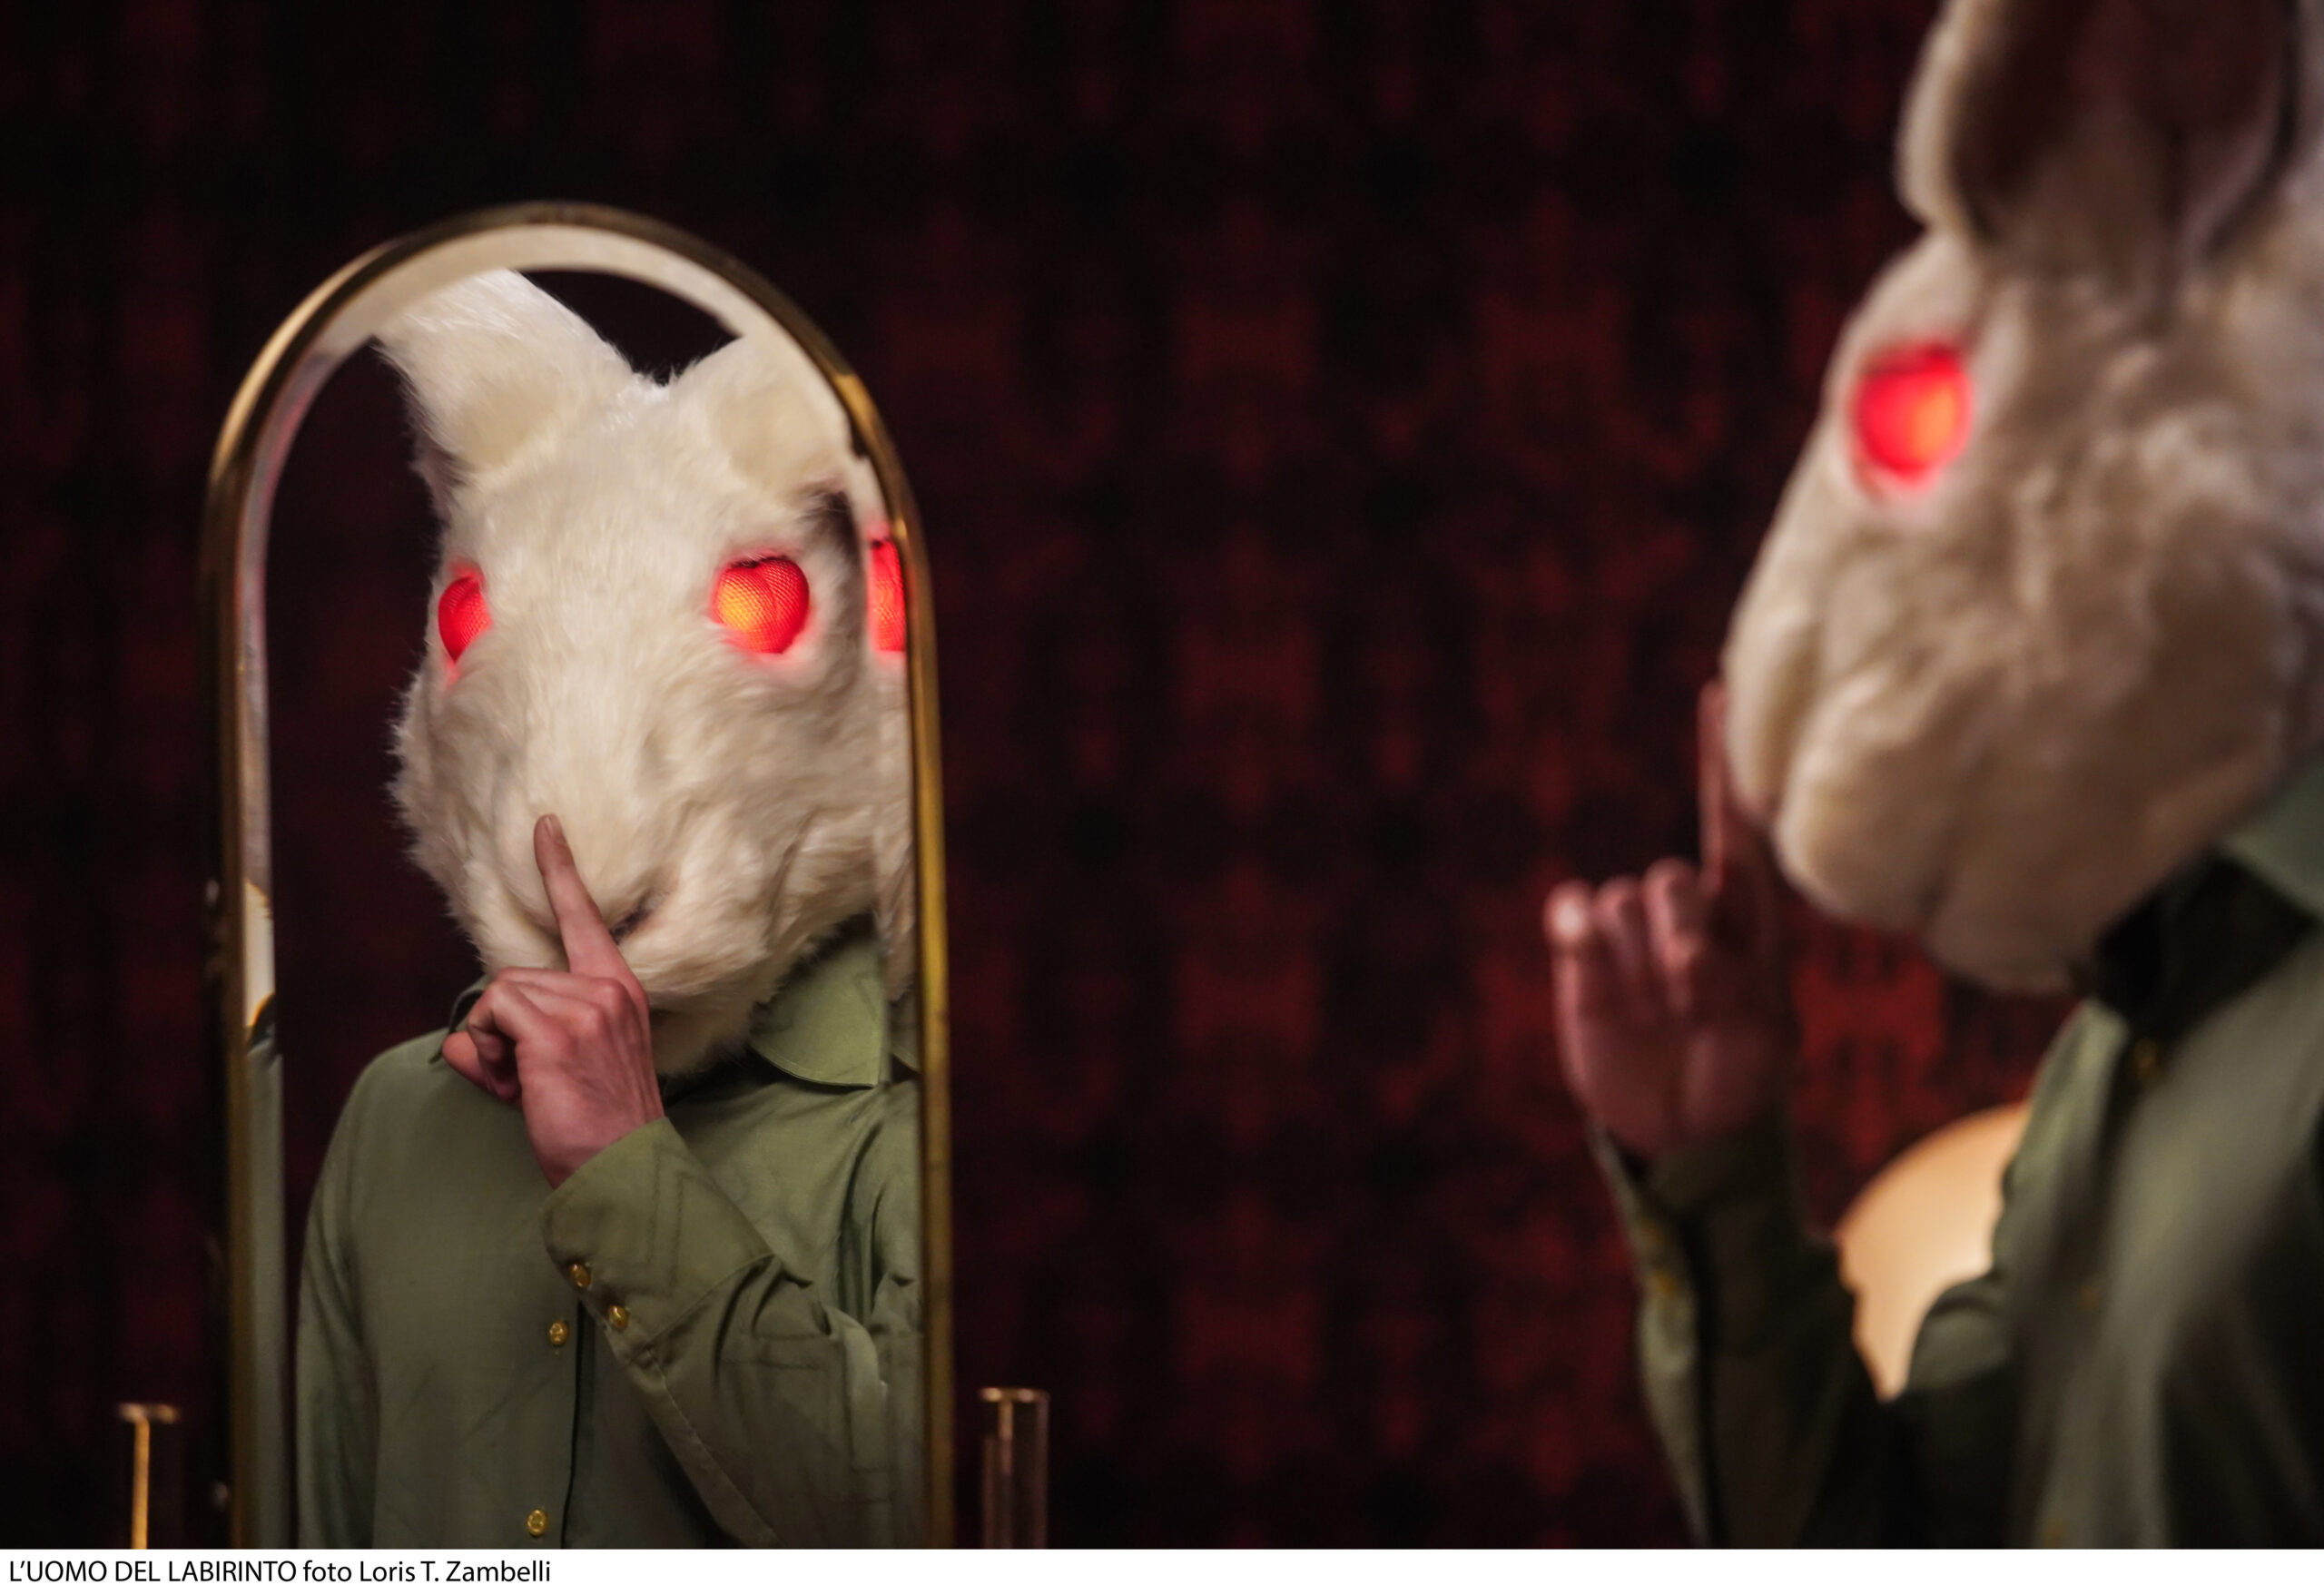 A photo of a character wearing the head of a bunny costume, holding his finger to his lips.